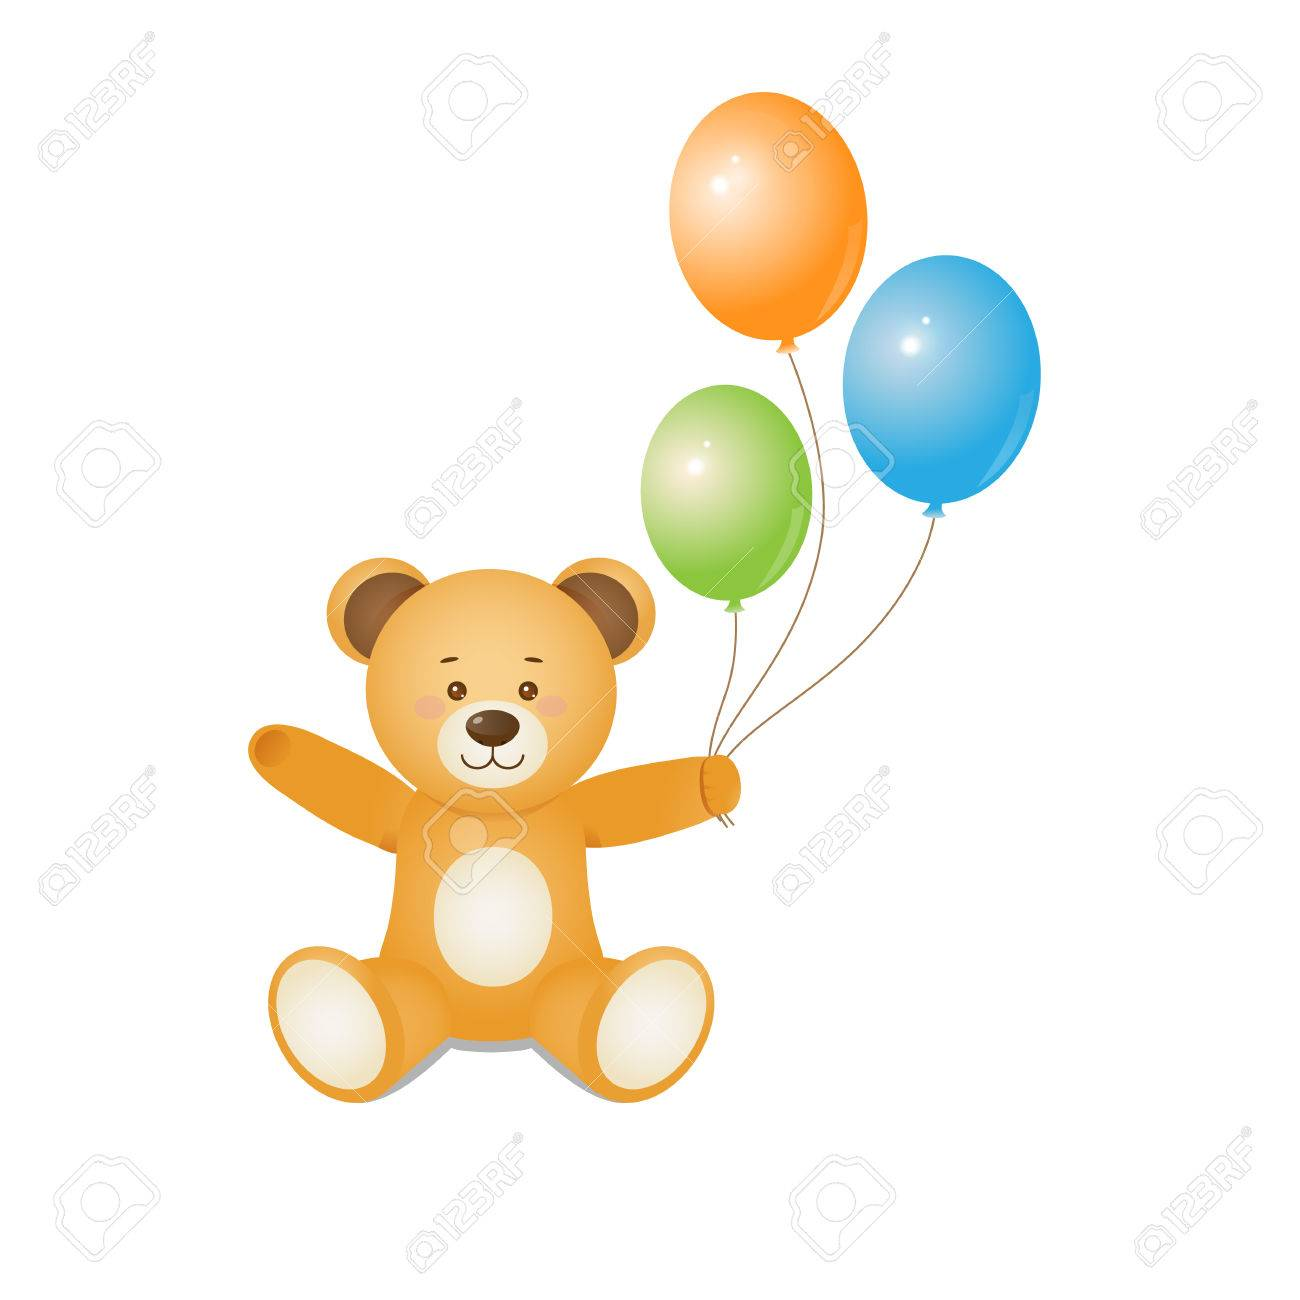 Funny Teddy Bear Holding Balloons In Hands.Design For Prints ...